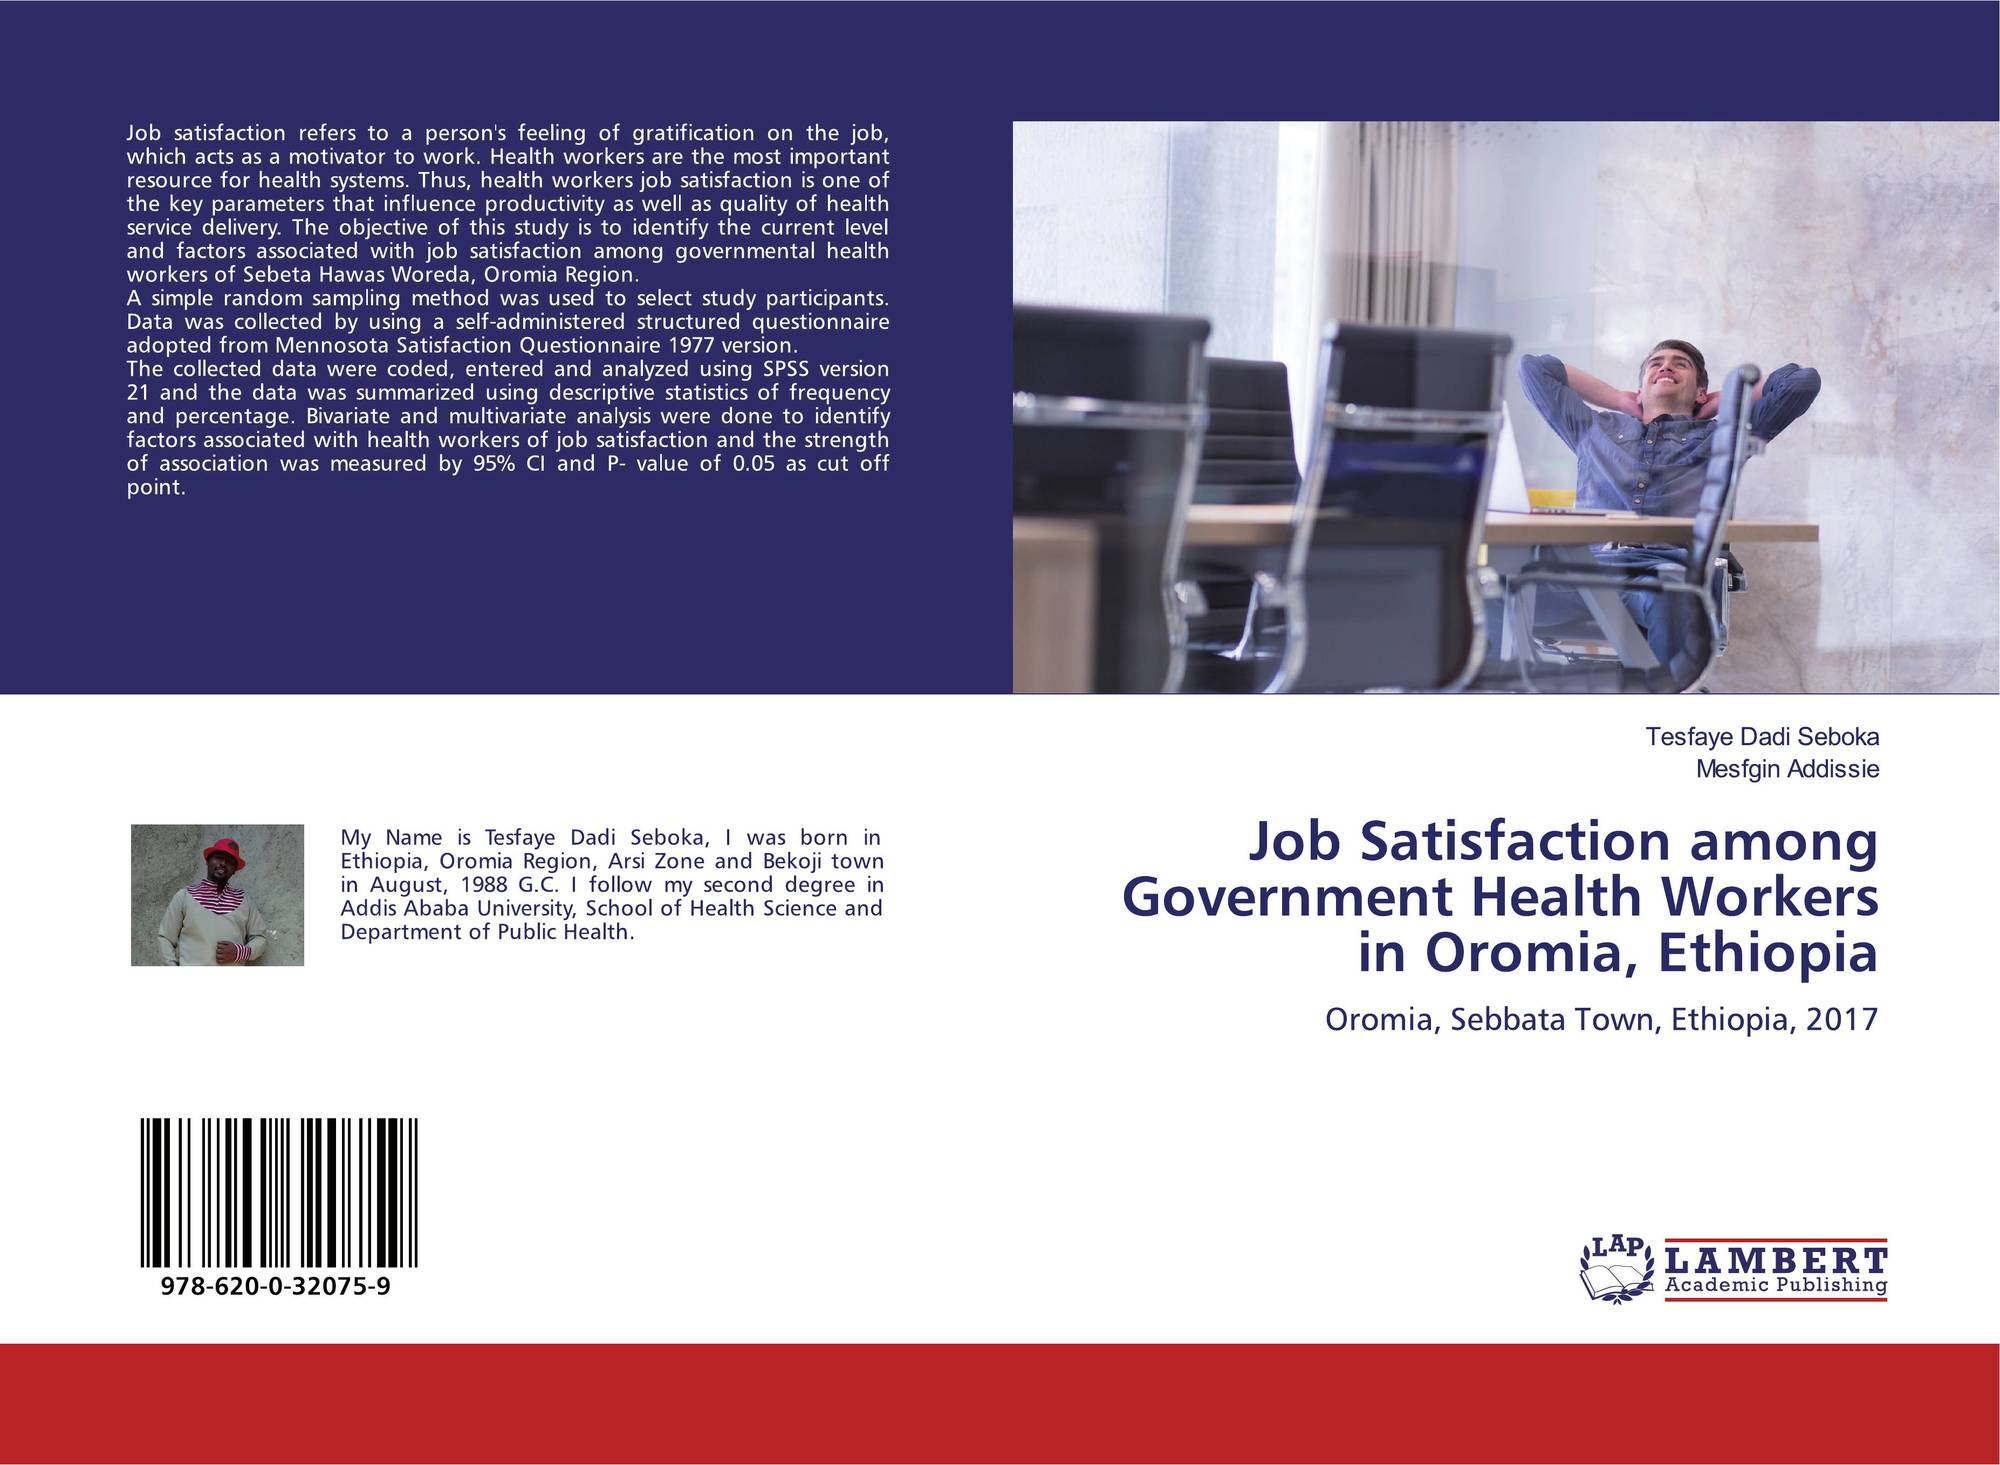 Job Satisfaction among Government Health Workers in Oromia